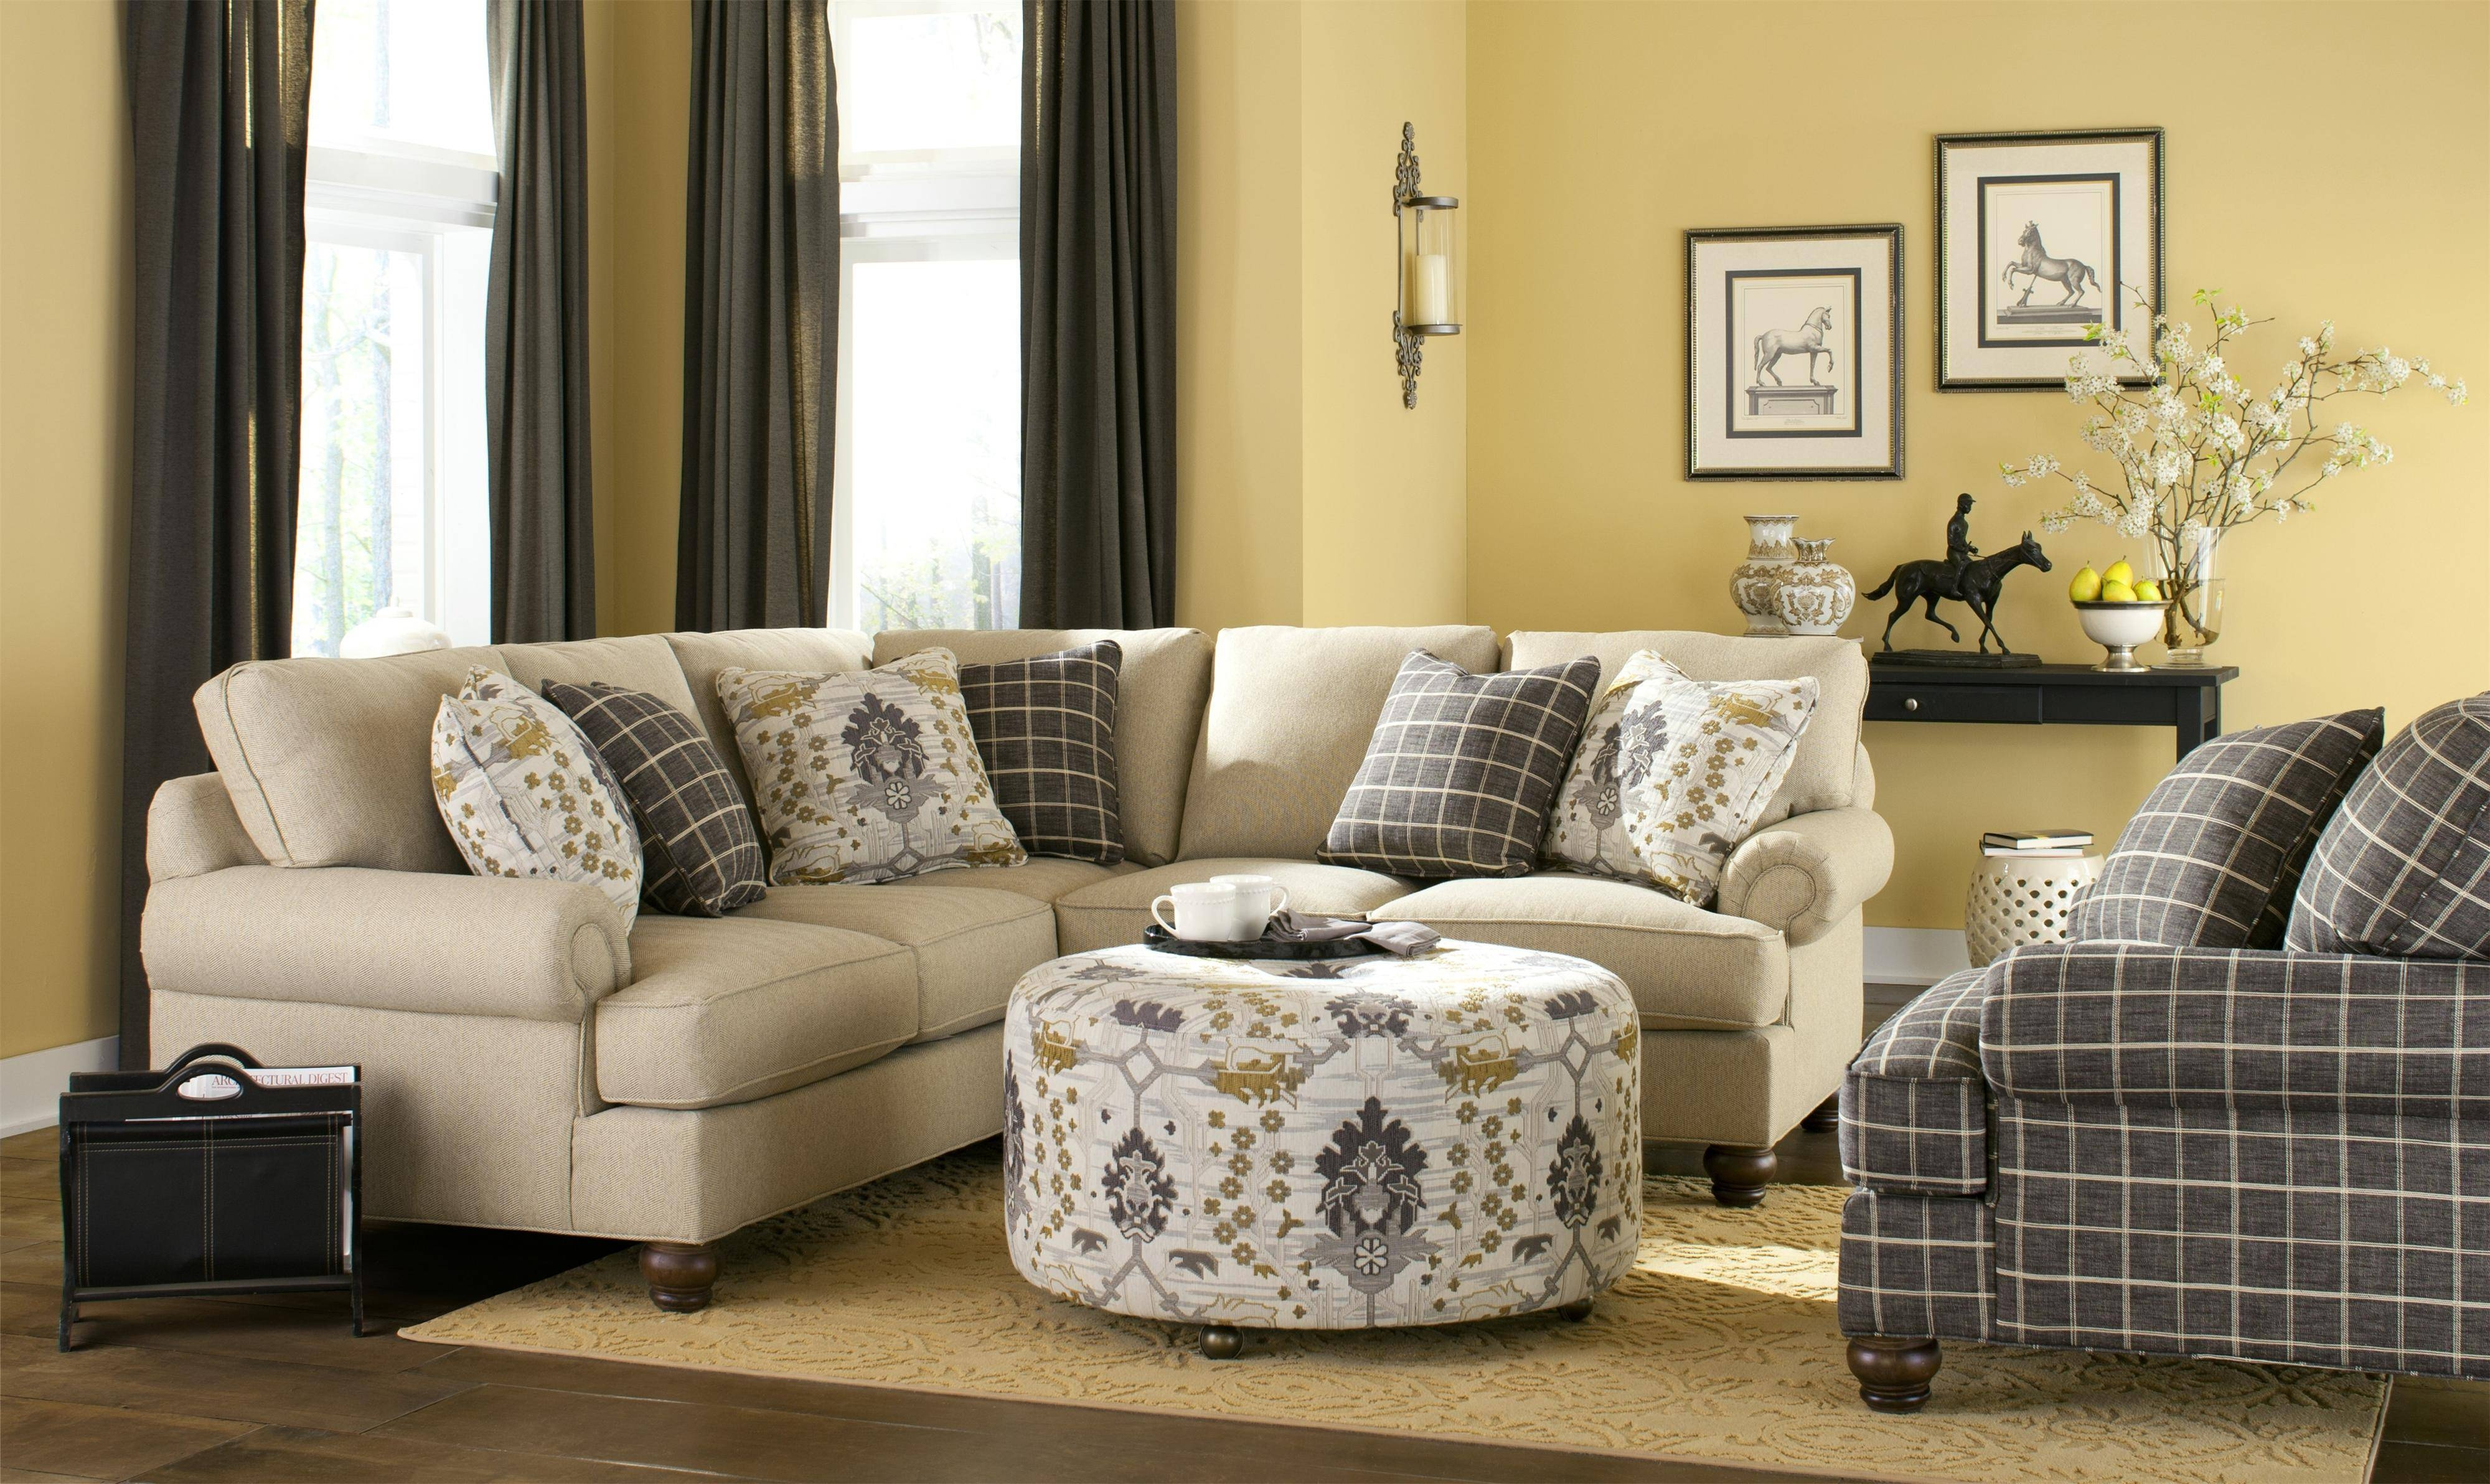 Craftmaster C9 Custom Collection <B>Customizable</b> Two Piece throughout Craftmaster Sectional Sofa (Image 8 of 30)